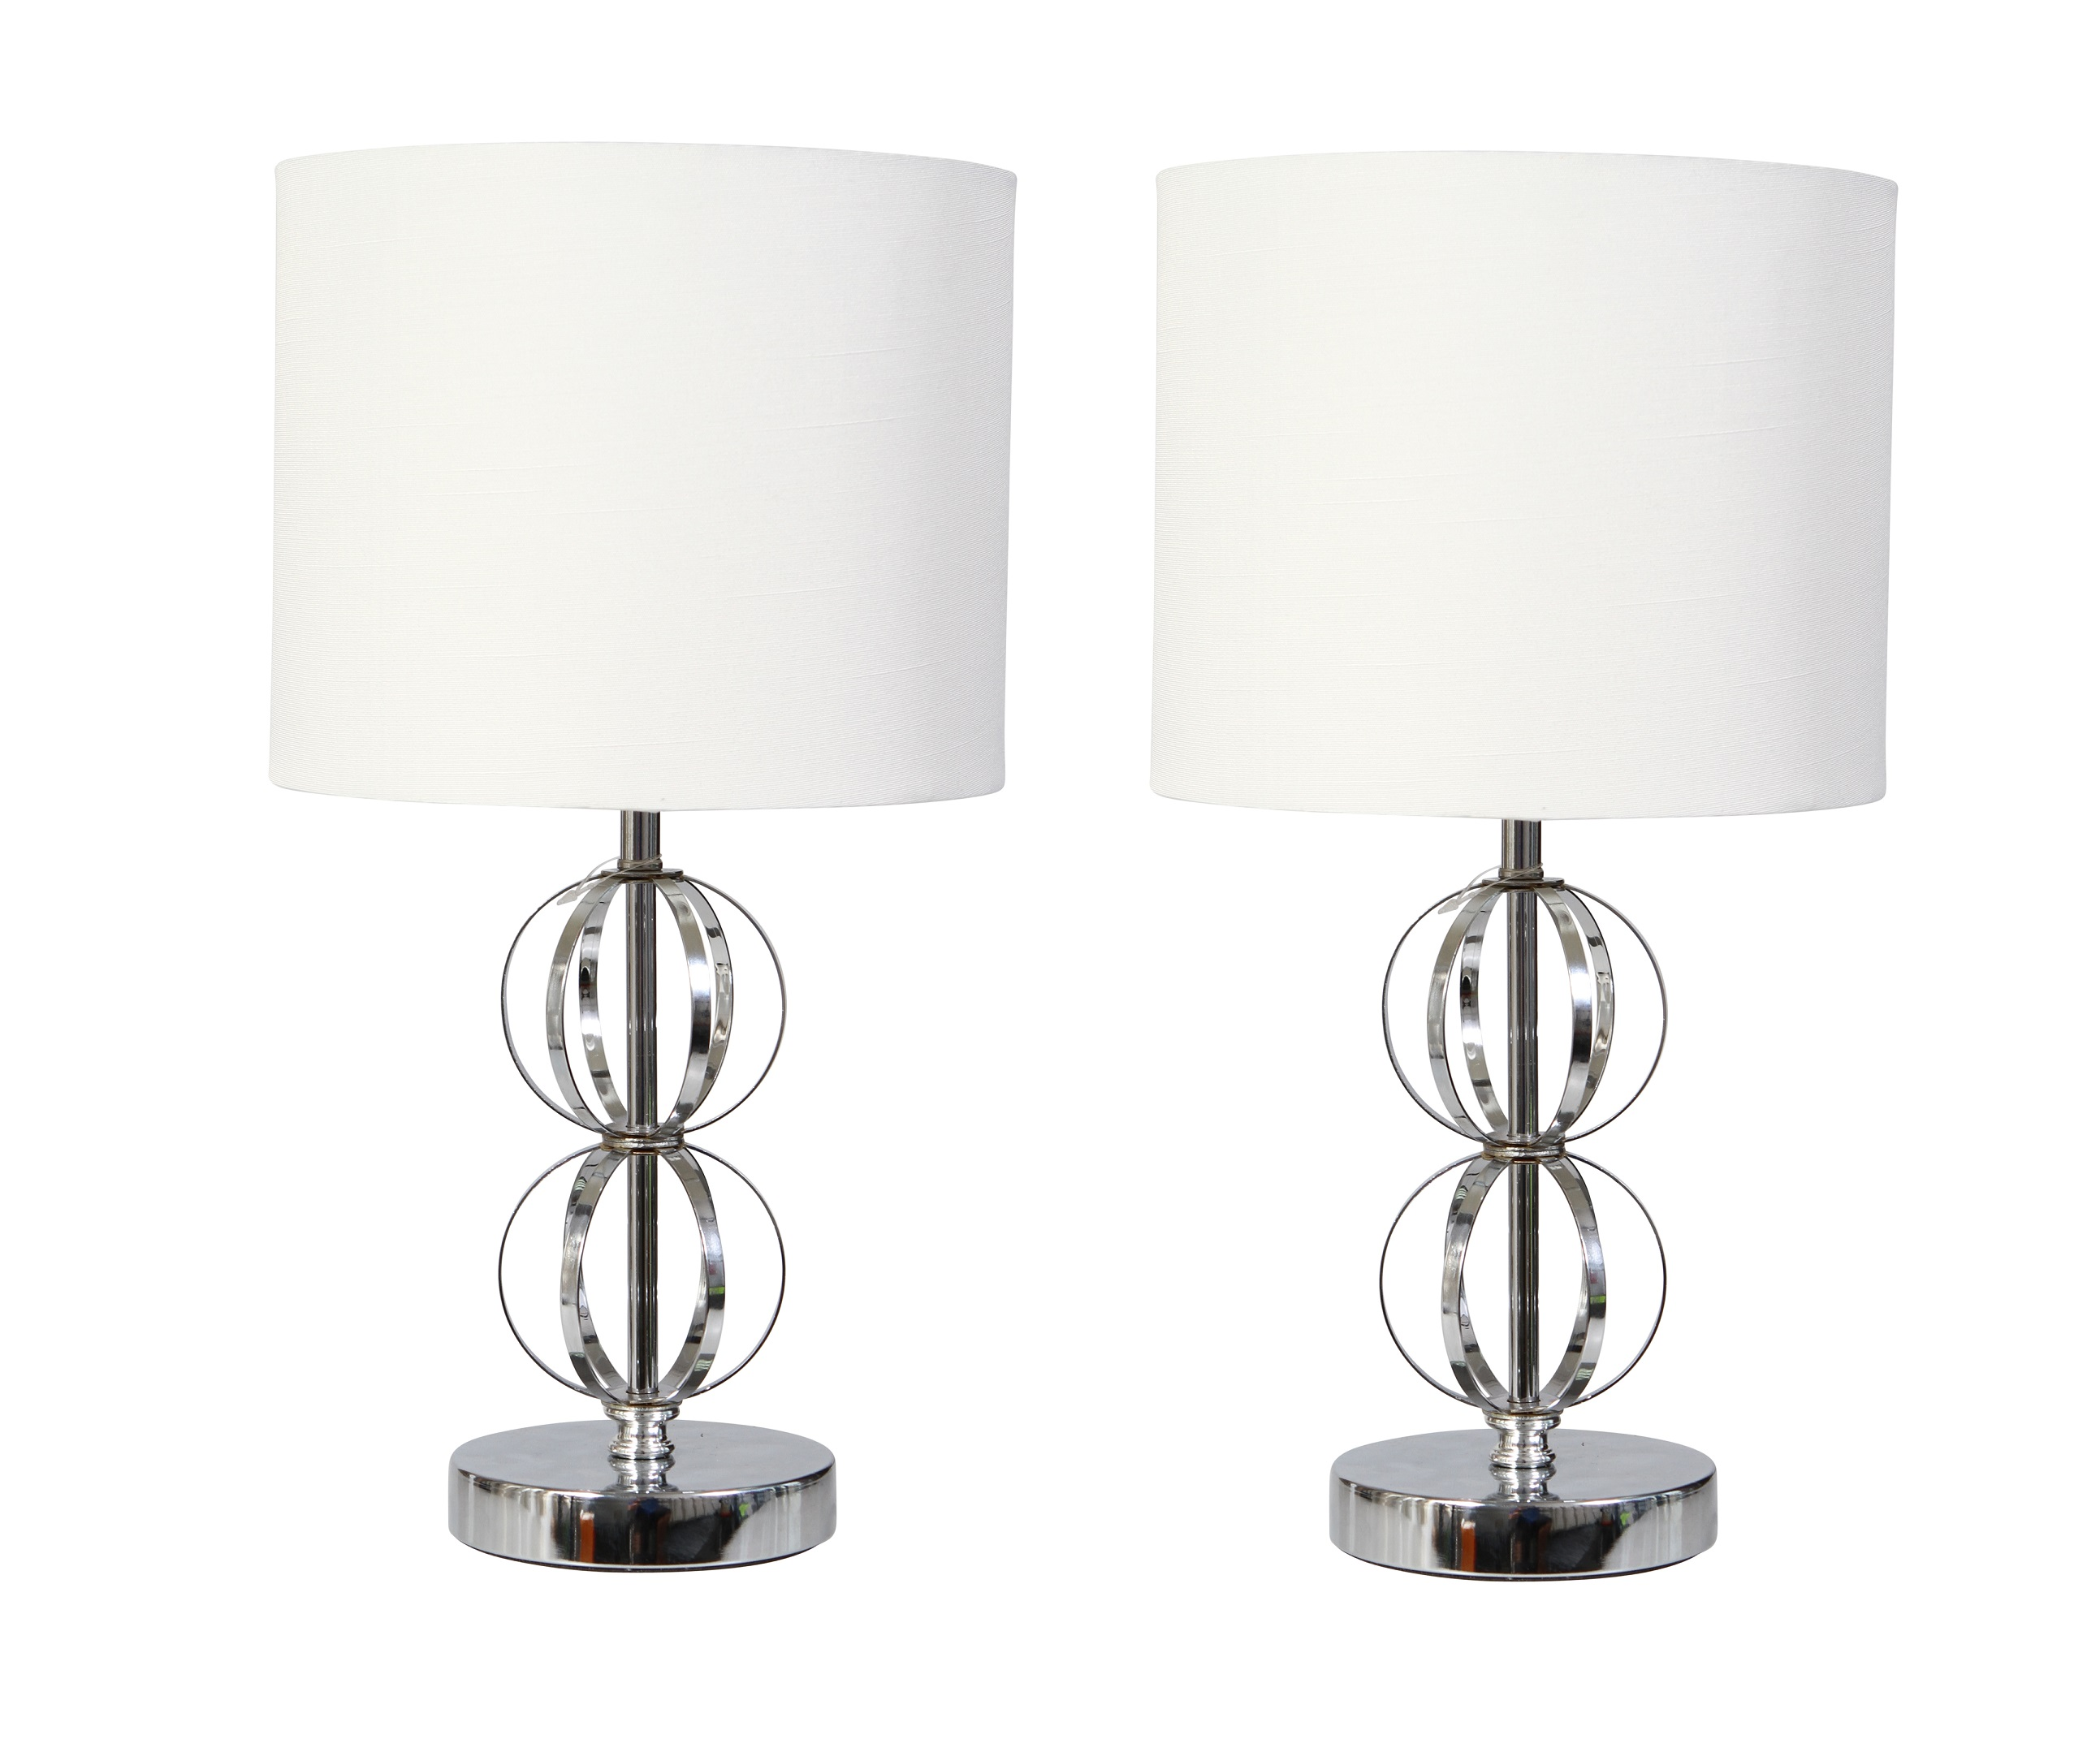 Pair Of Modern Chrome Table Lamp Bedside Lights With Cream